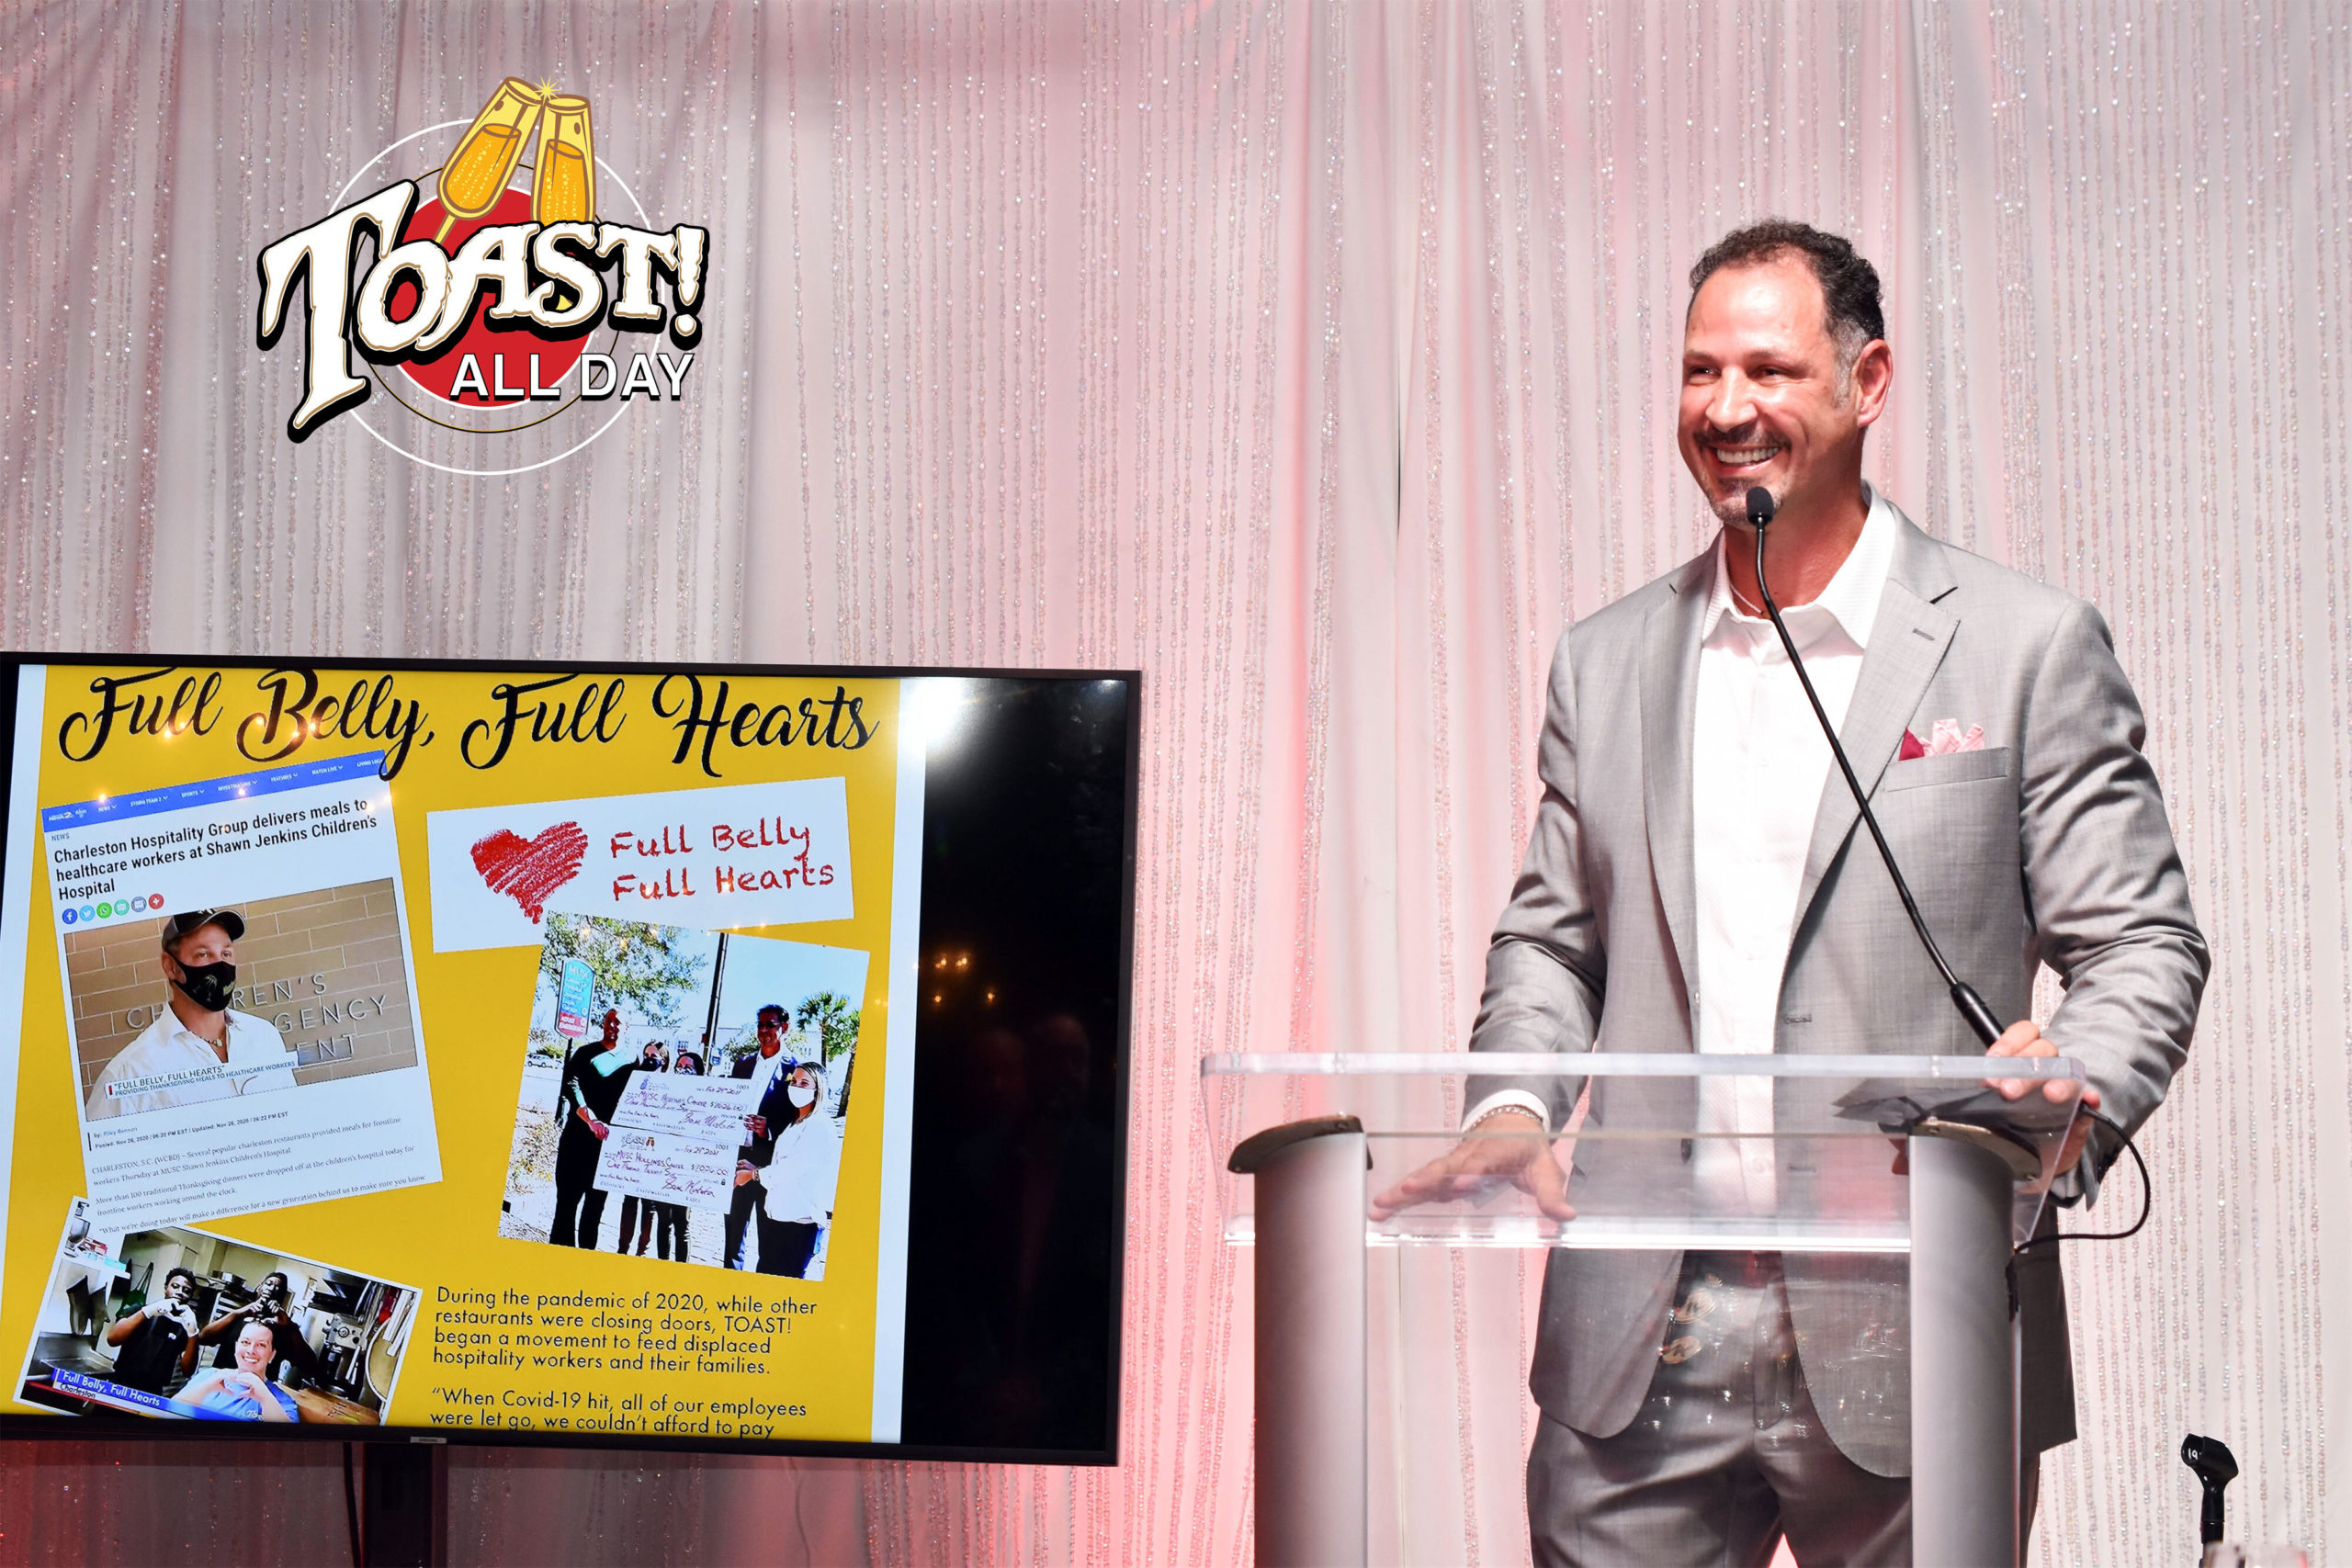 Sam Mustafa - Charleston Hospitality Group CEO - Discussing the Full Belly, Full Hearts Charitable Intiative at Toast All Day Gala 2021